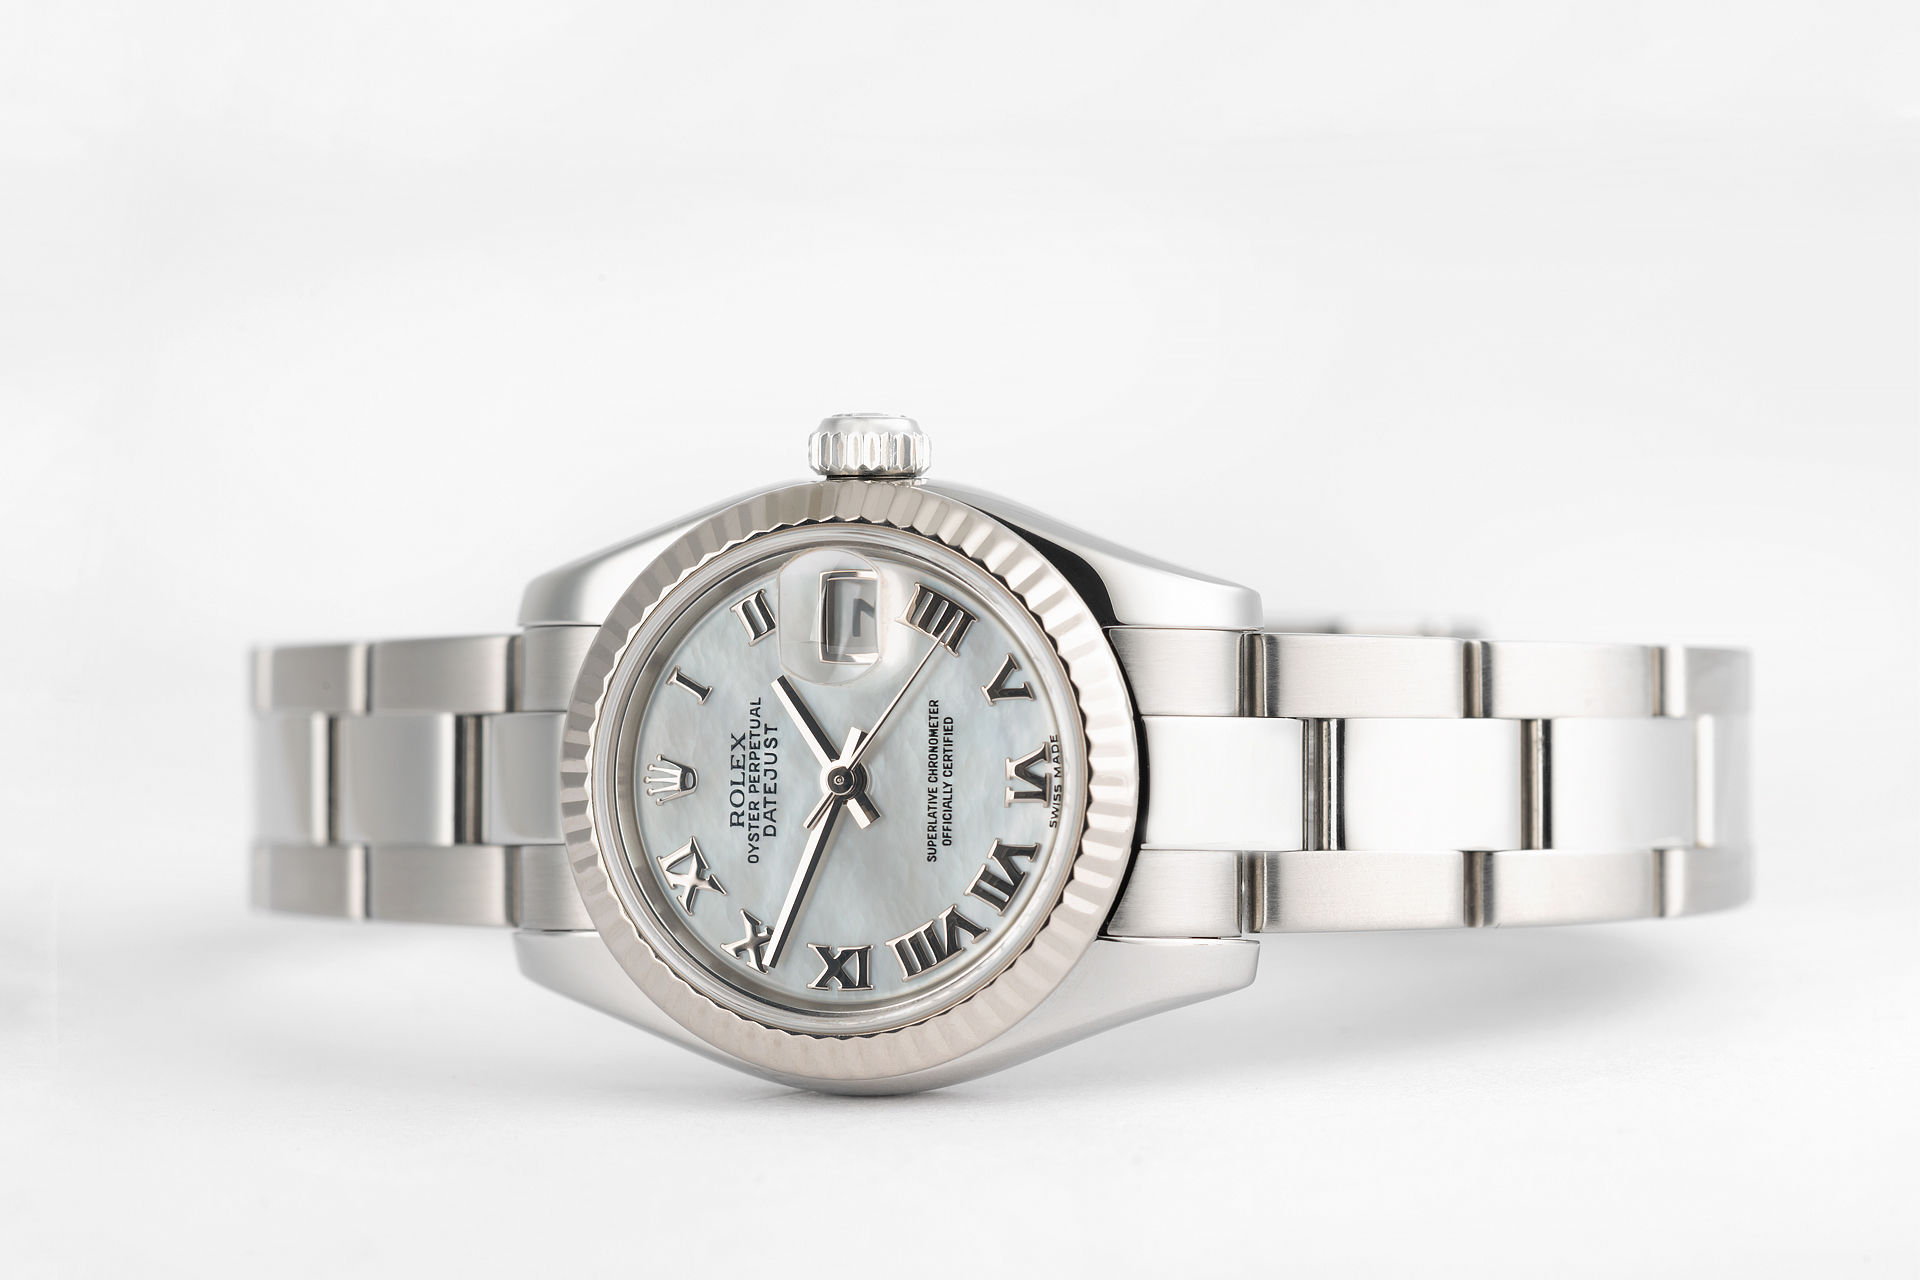 ref 179174 | Mother Of Pearl 'White Gold Bezel' | Rolex Datejust